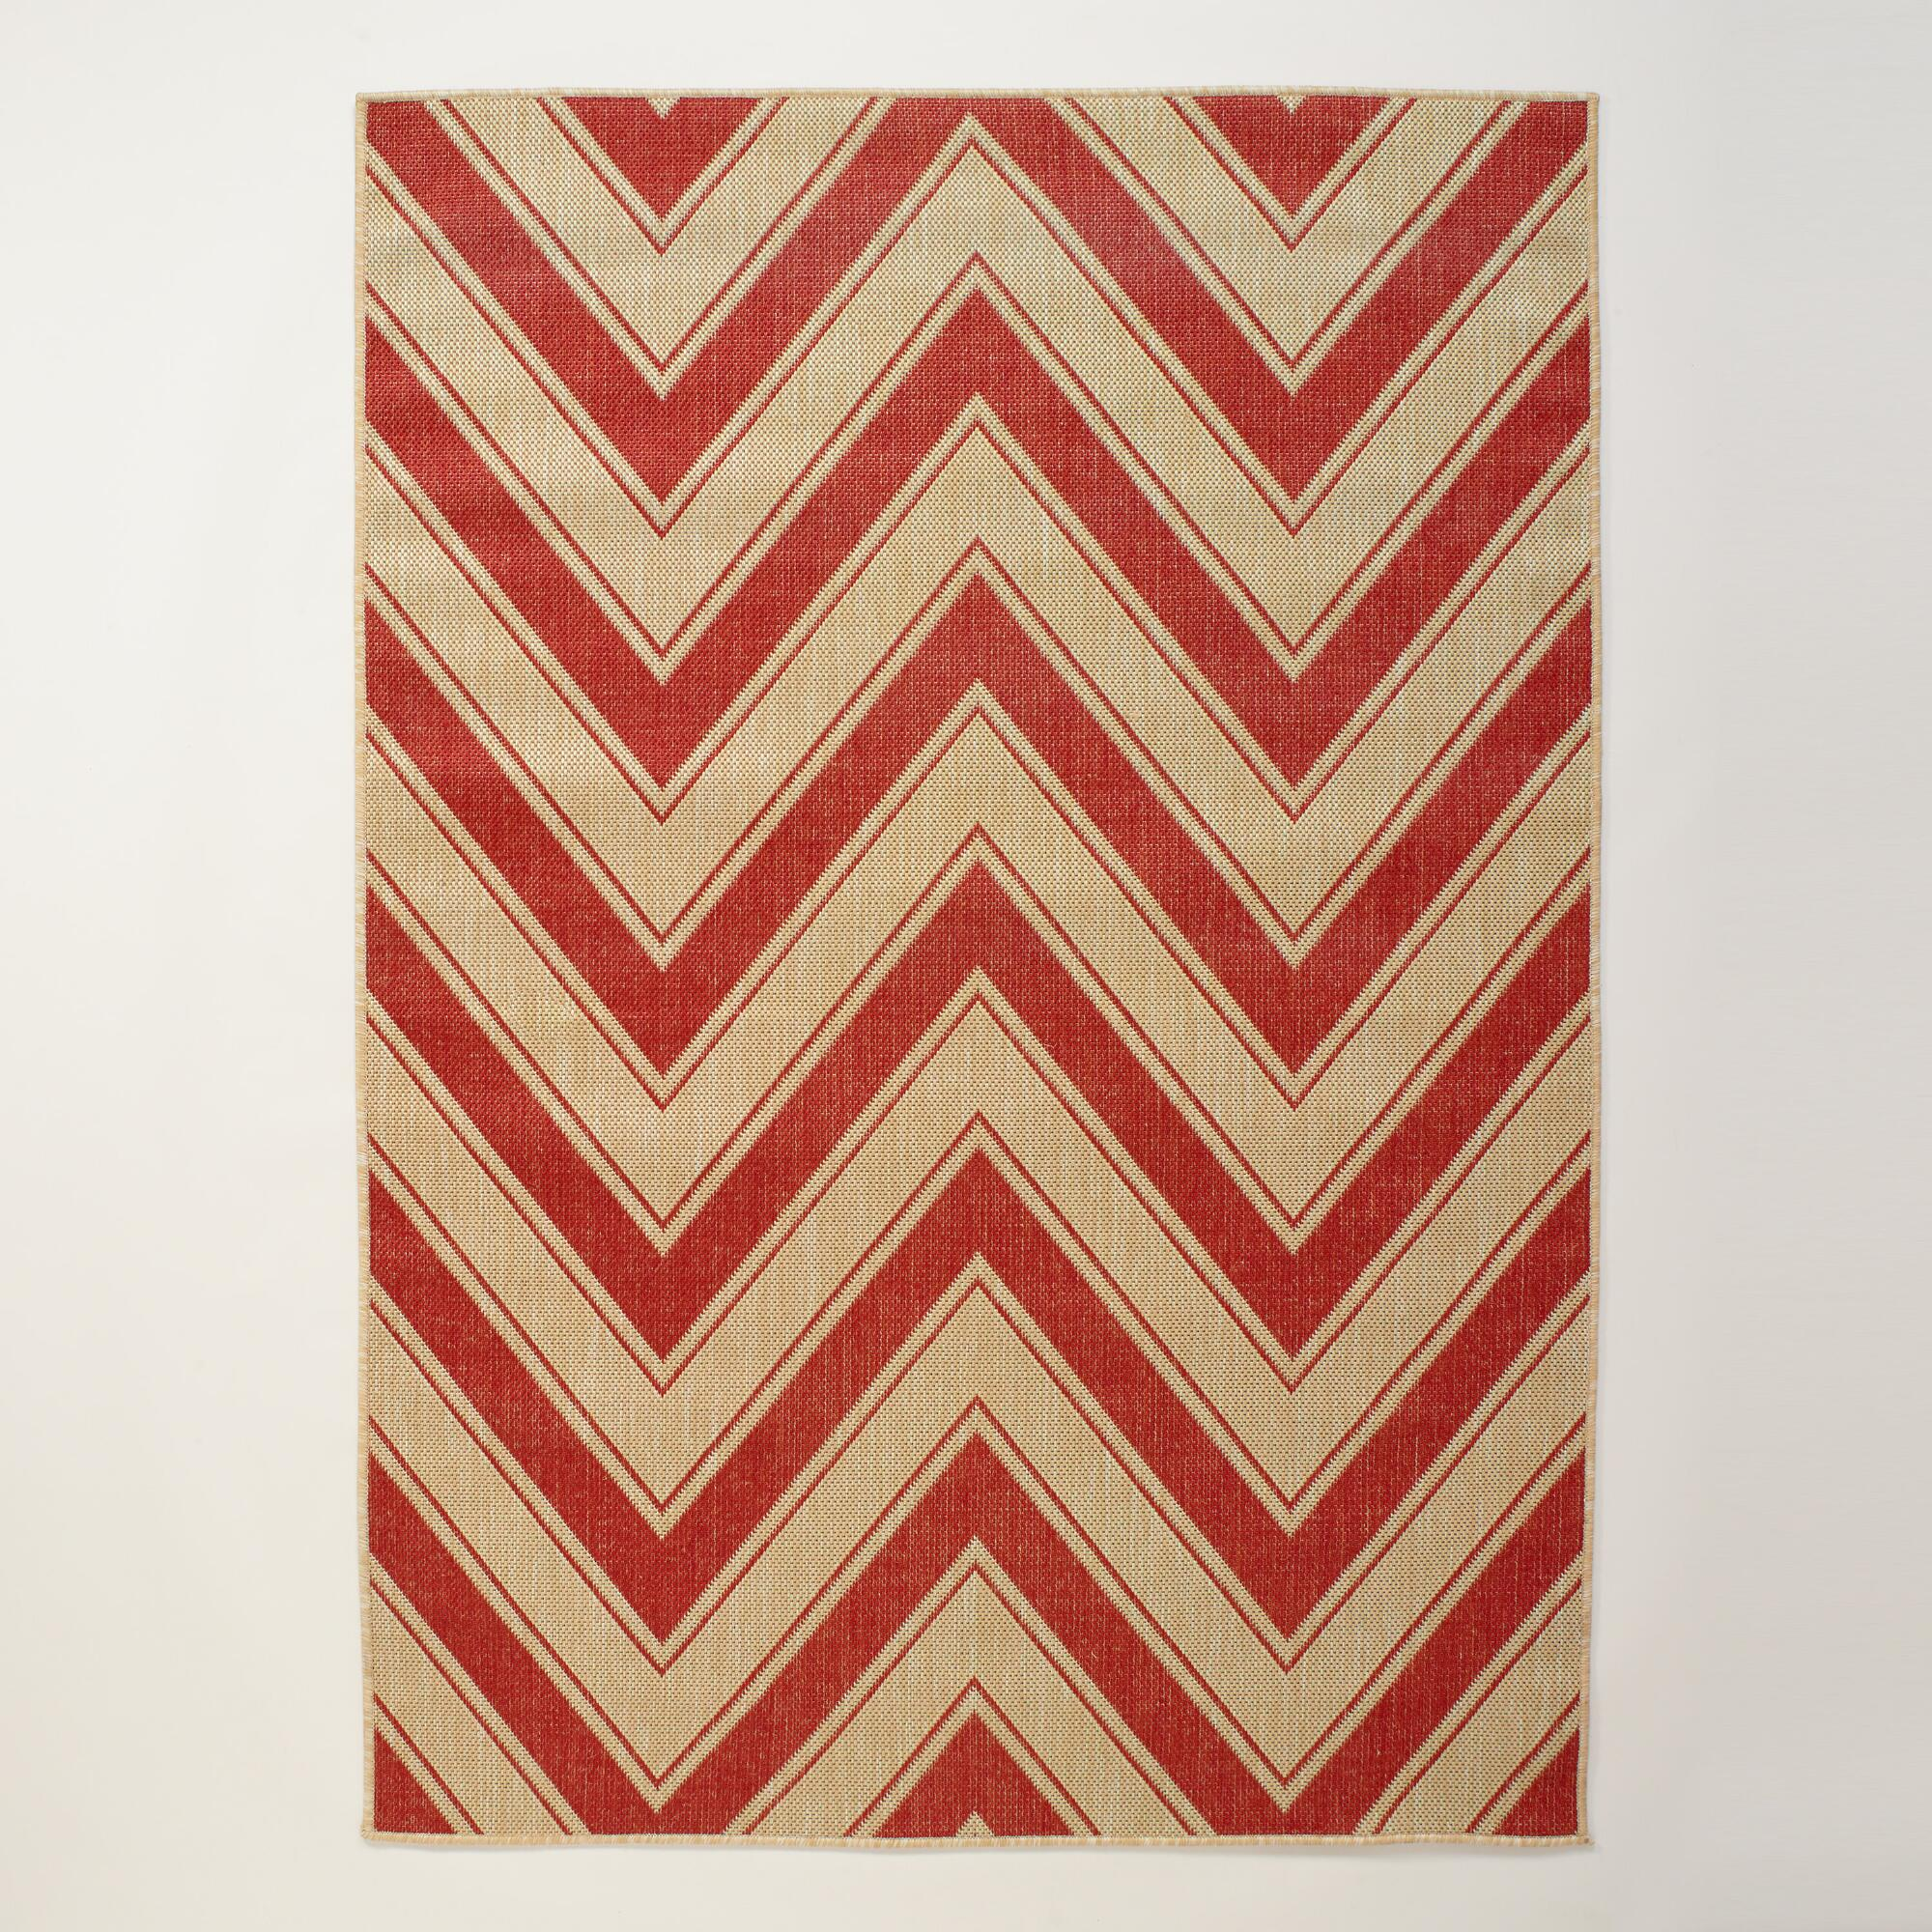 Chevron Kitchen Rug: 4.9'x6.9' Red Chevron Indoor-Outdoor Rug